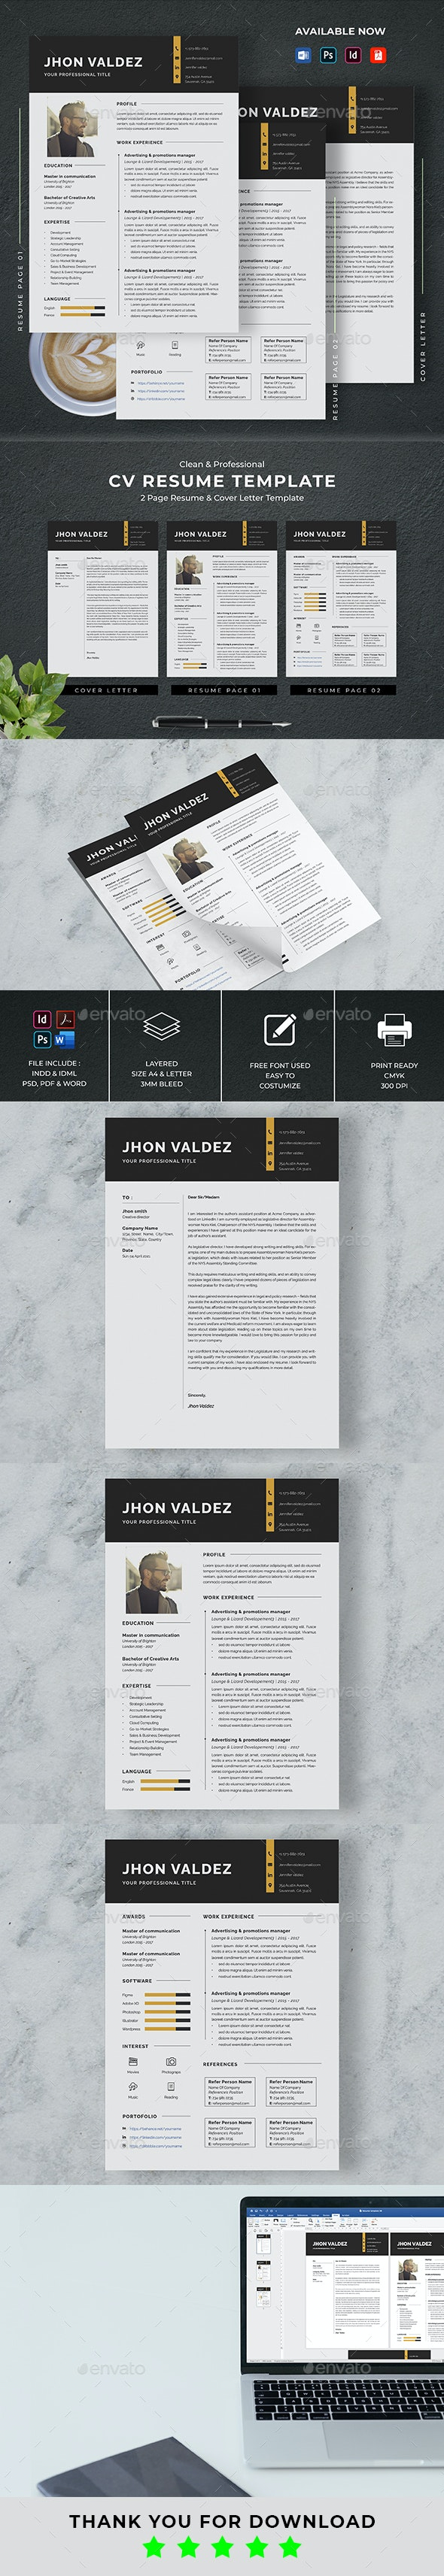 Minimalist CV Resume & Cover Letter Template - Resumes Stationery